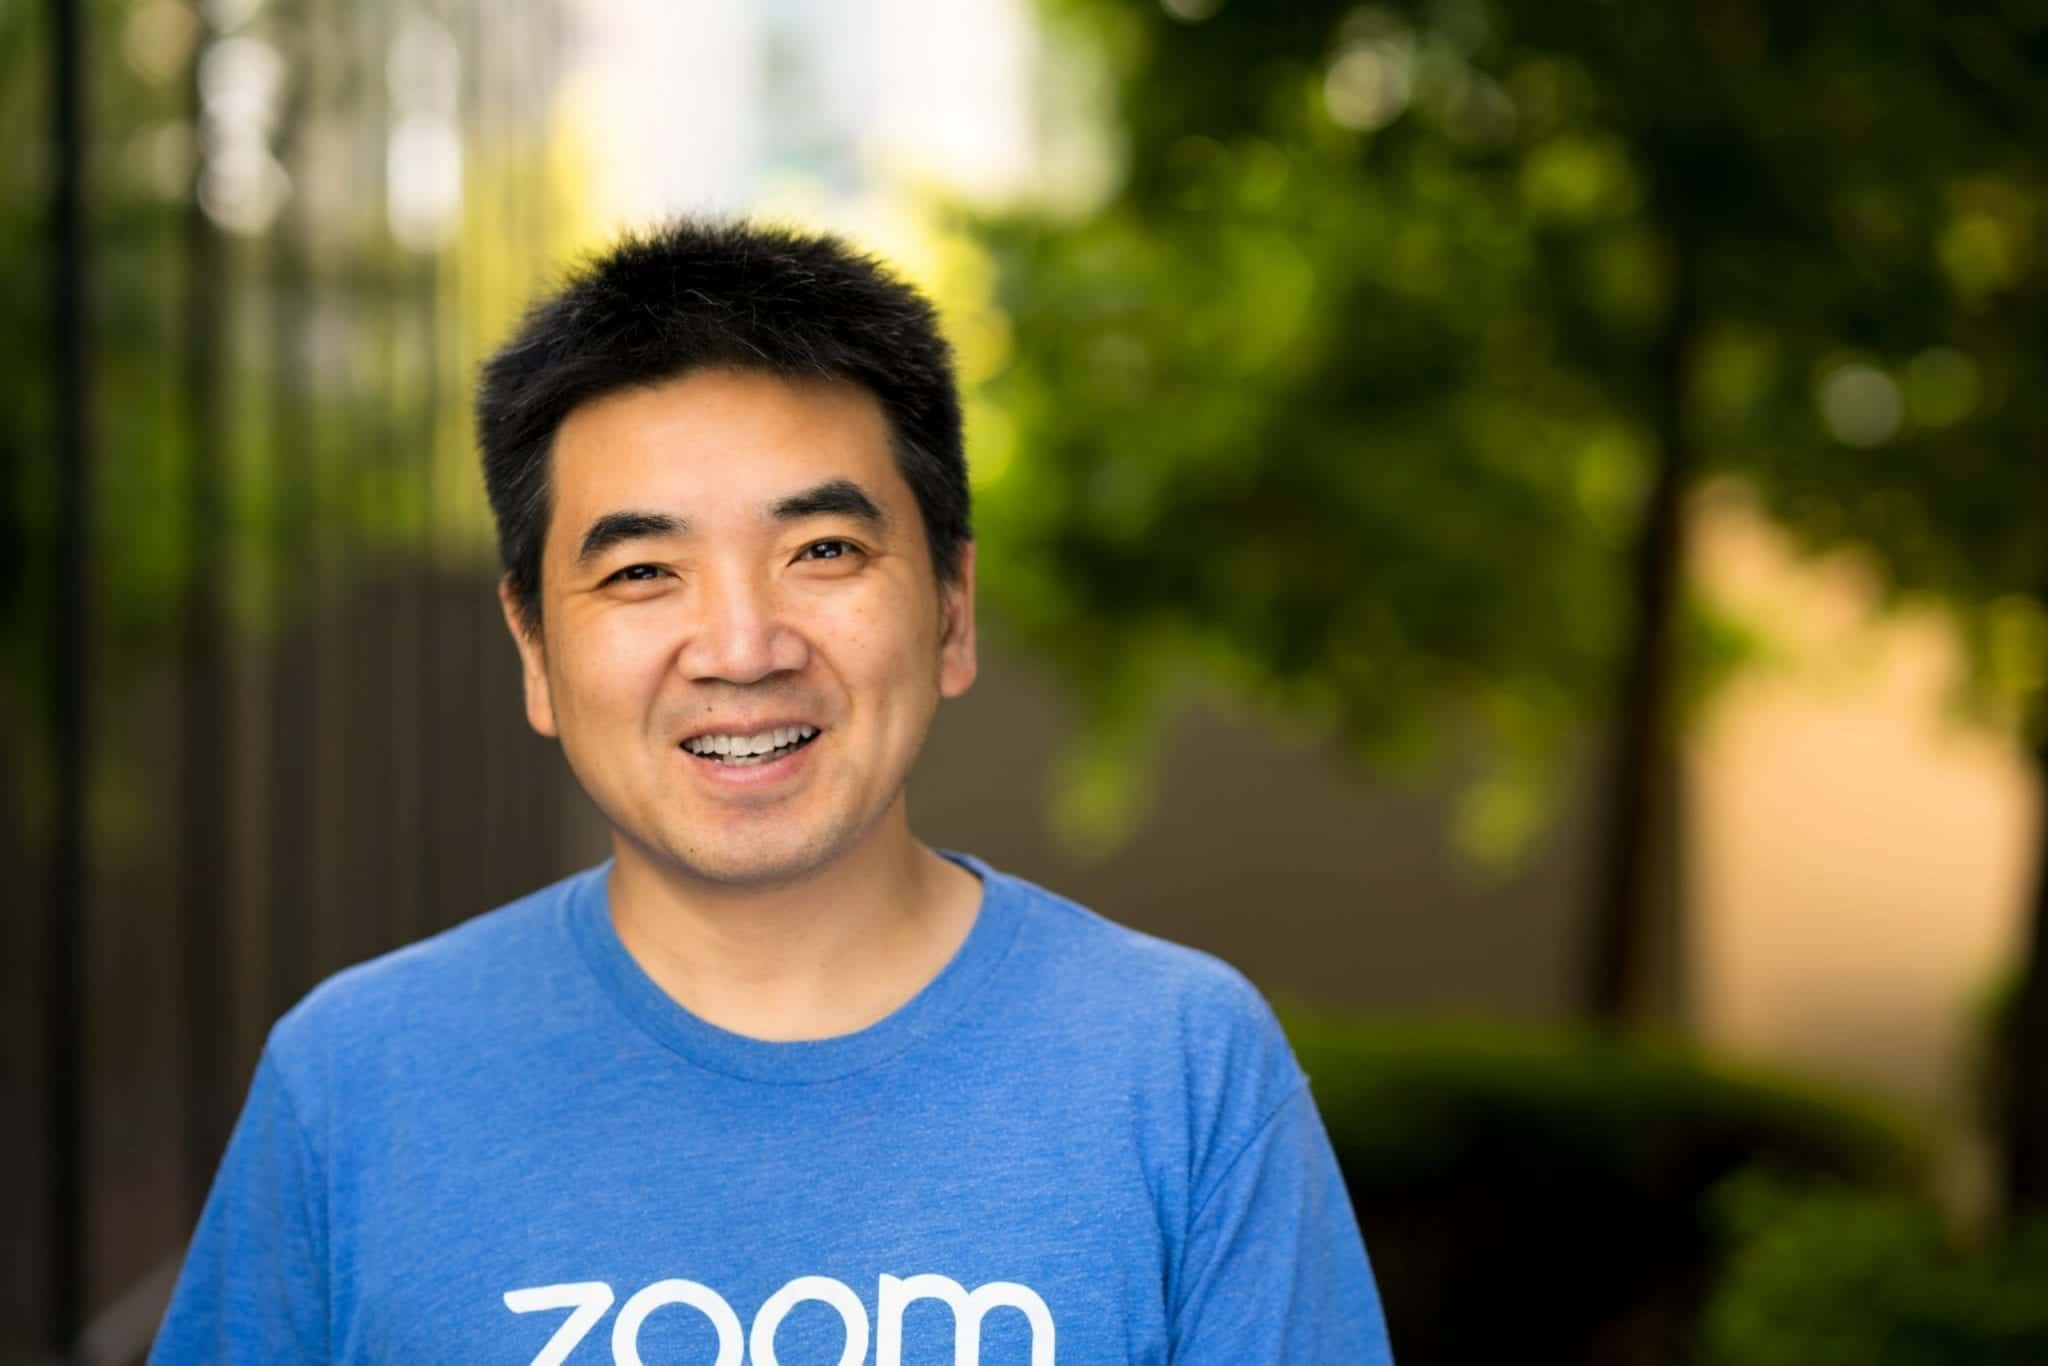 Zoom attracts 300 million active users in one month